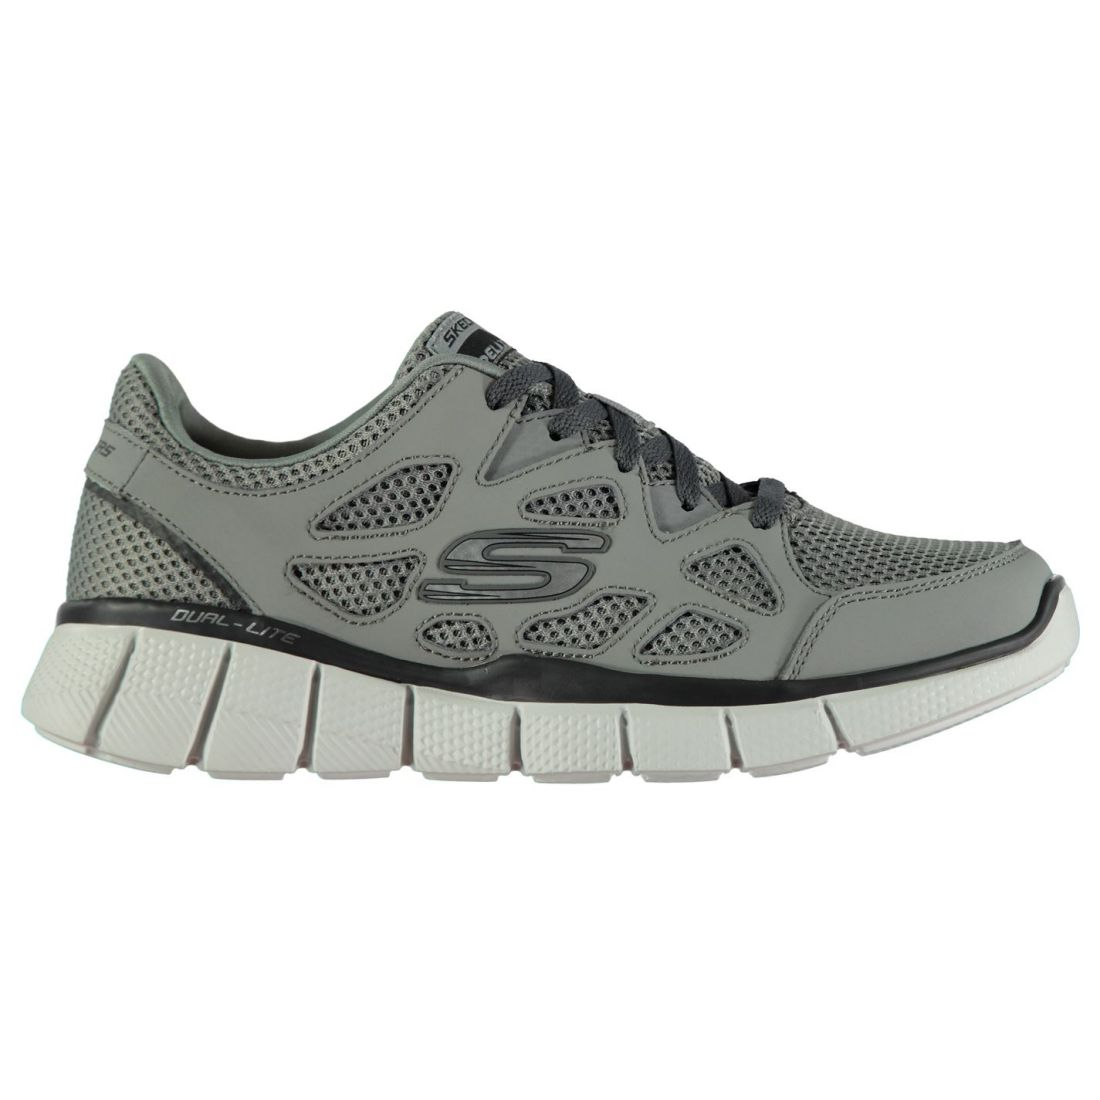 Skechers EQ 2 Turnschuhe Mens Gents Runners Laces Fastened Ventilated Lightweight